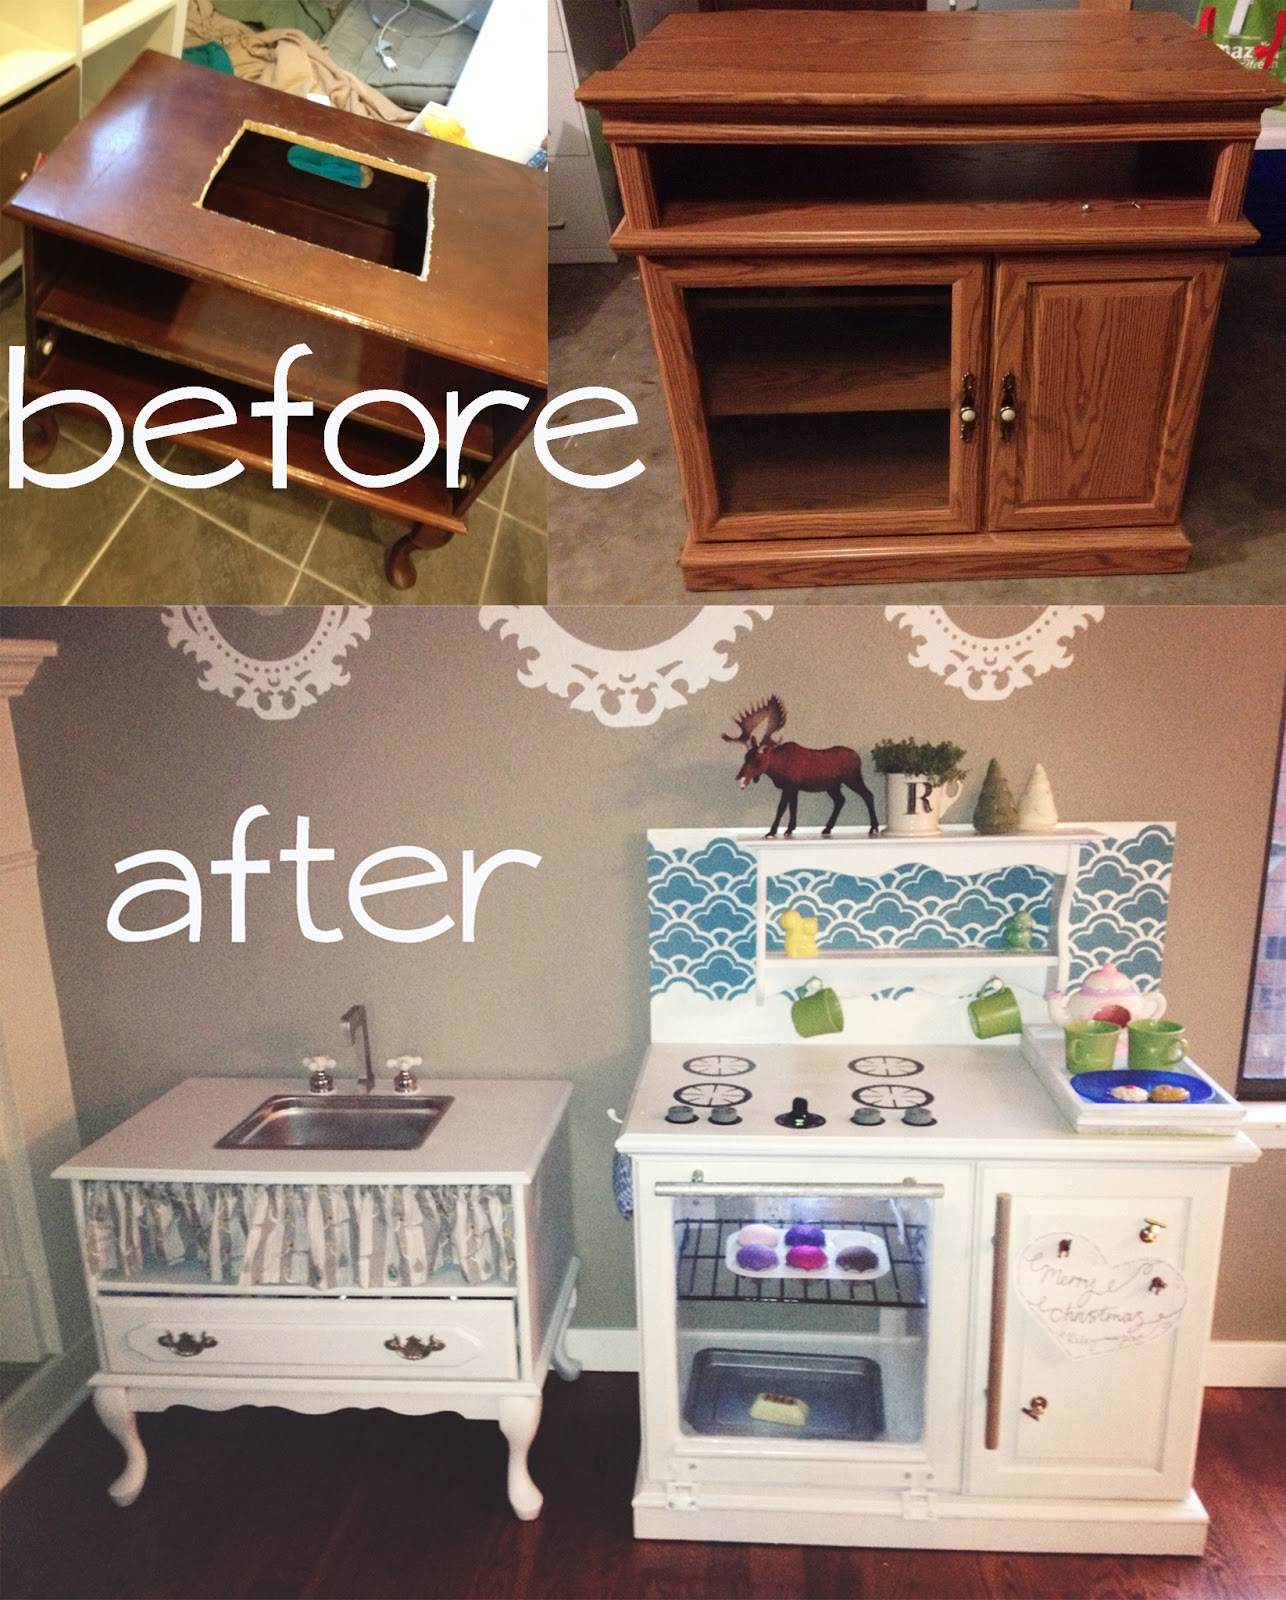 Diy Play Kitchen Adventures In Crafting By Katyandzucchini